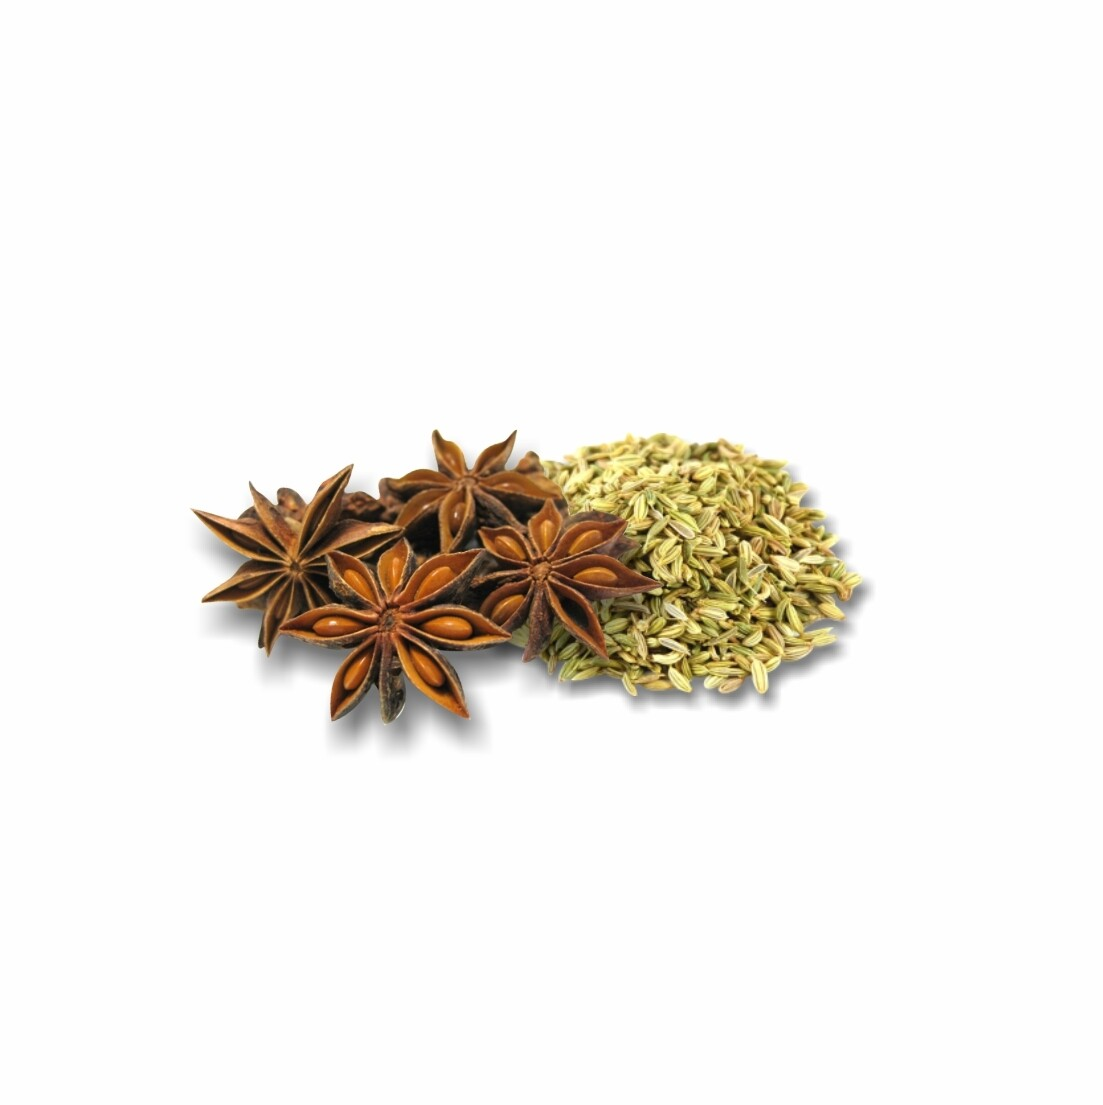 Fennel and Star Anise (ground)